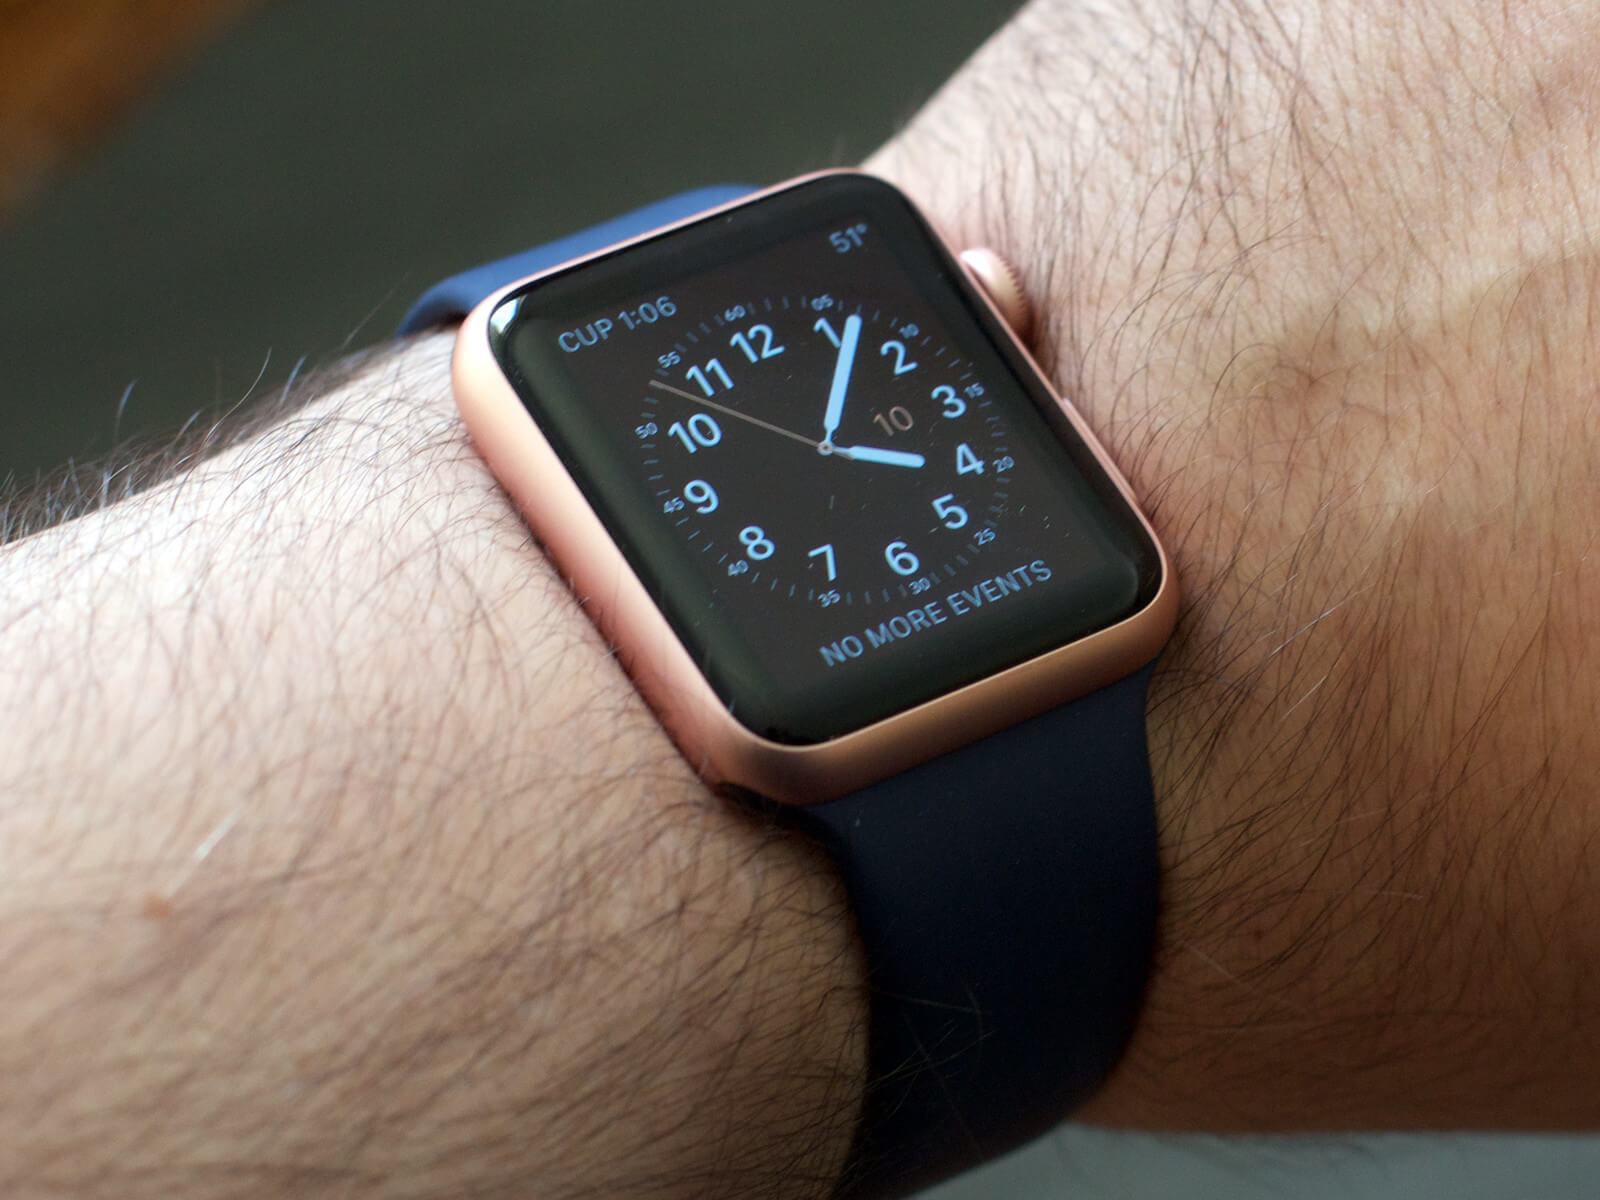 podría ser agregada al Apple Watch